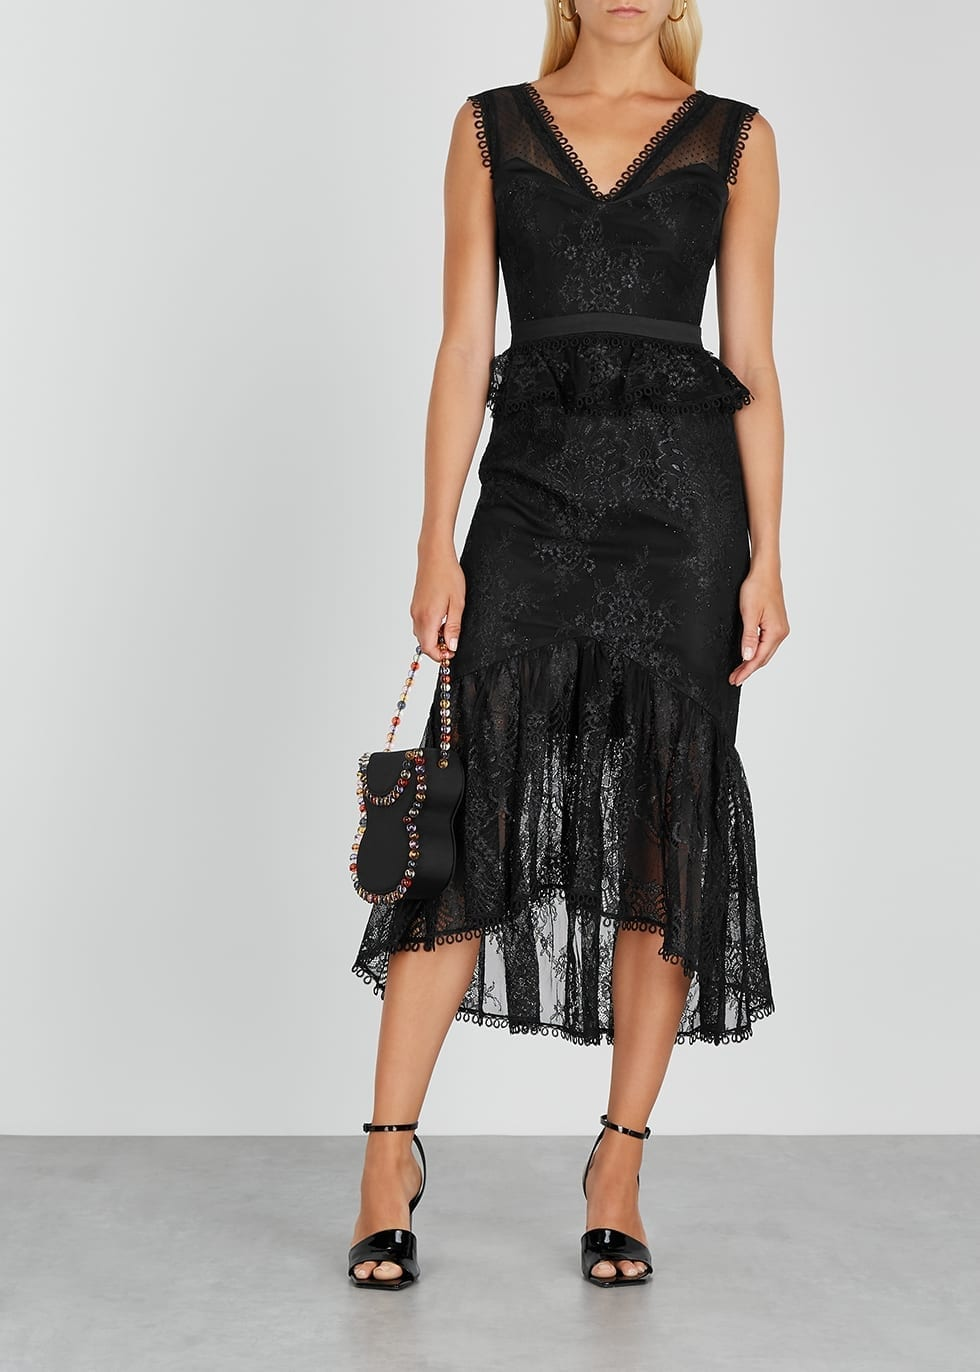 THREE FLOOR Hypnotic Black Metallic Lace Dress